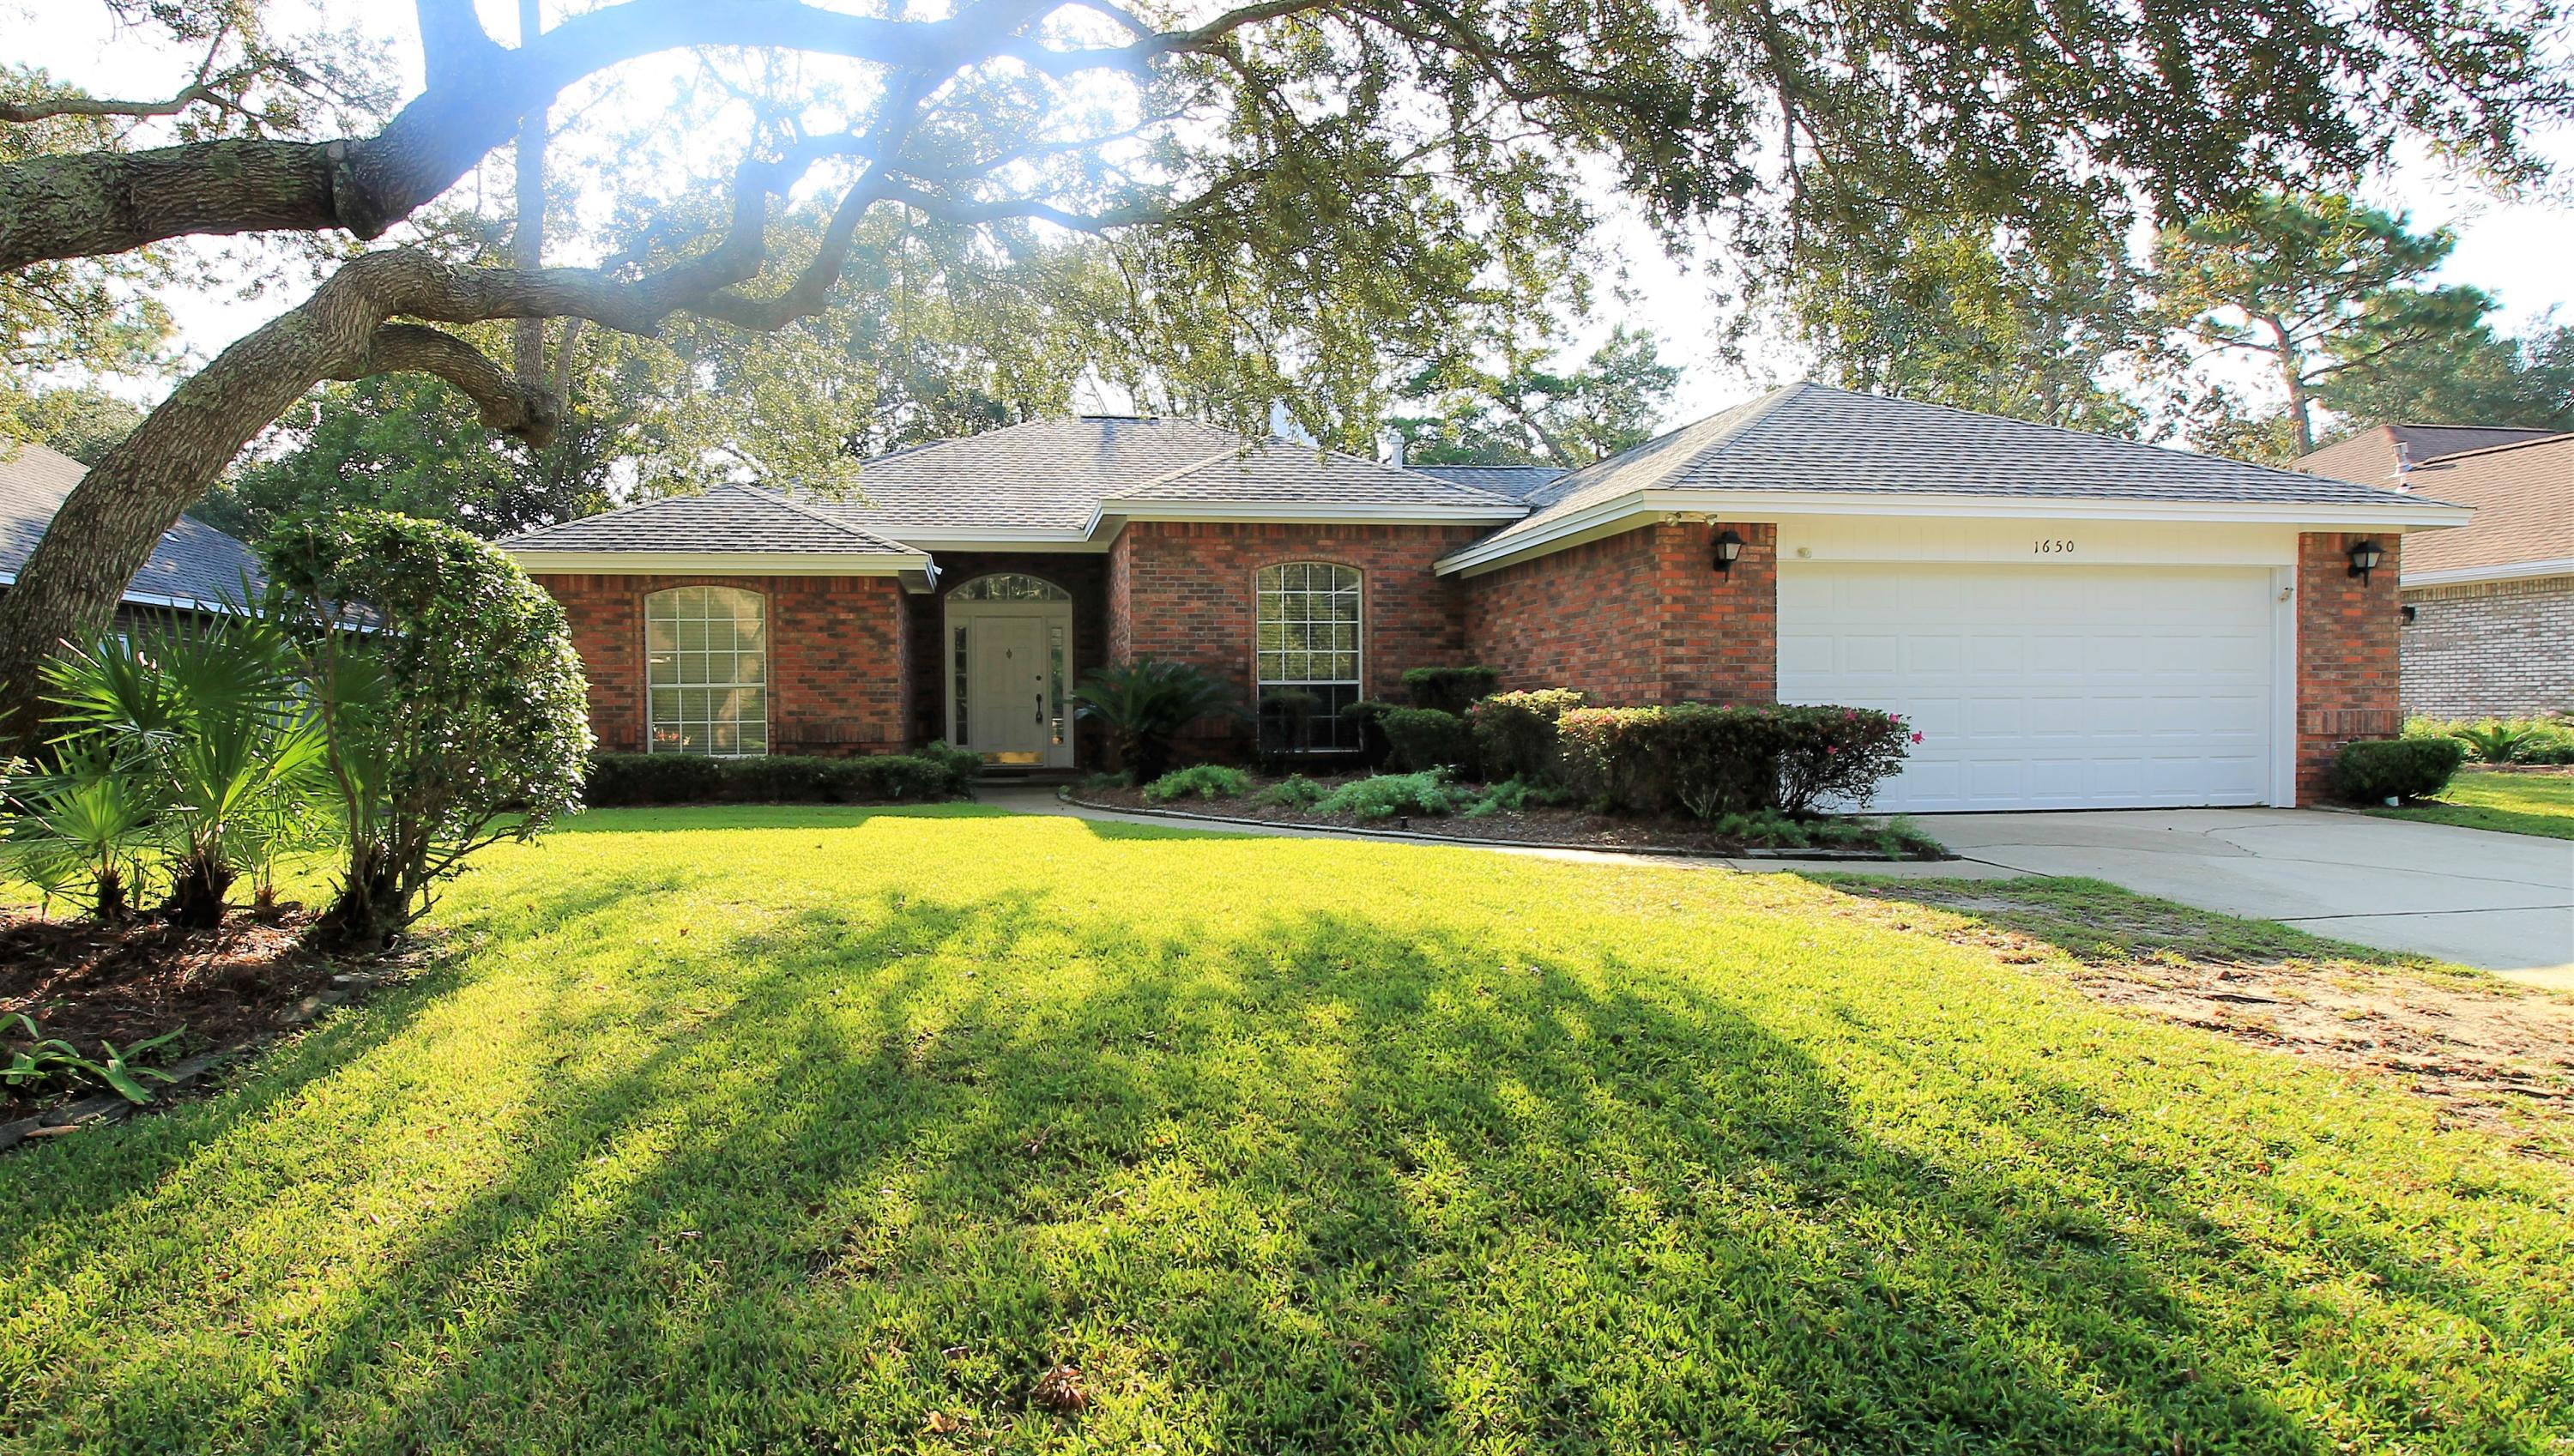 Photo of home for sale at 1650 Parkside, Niceville FL